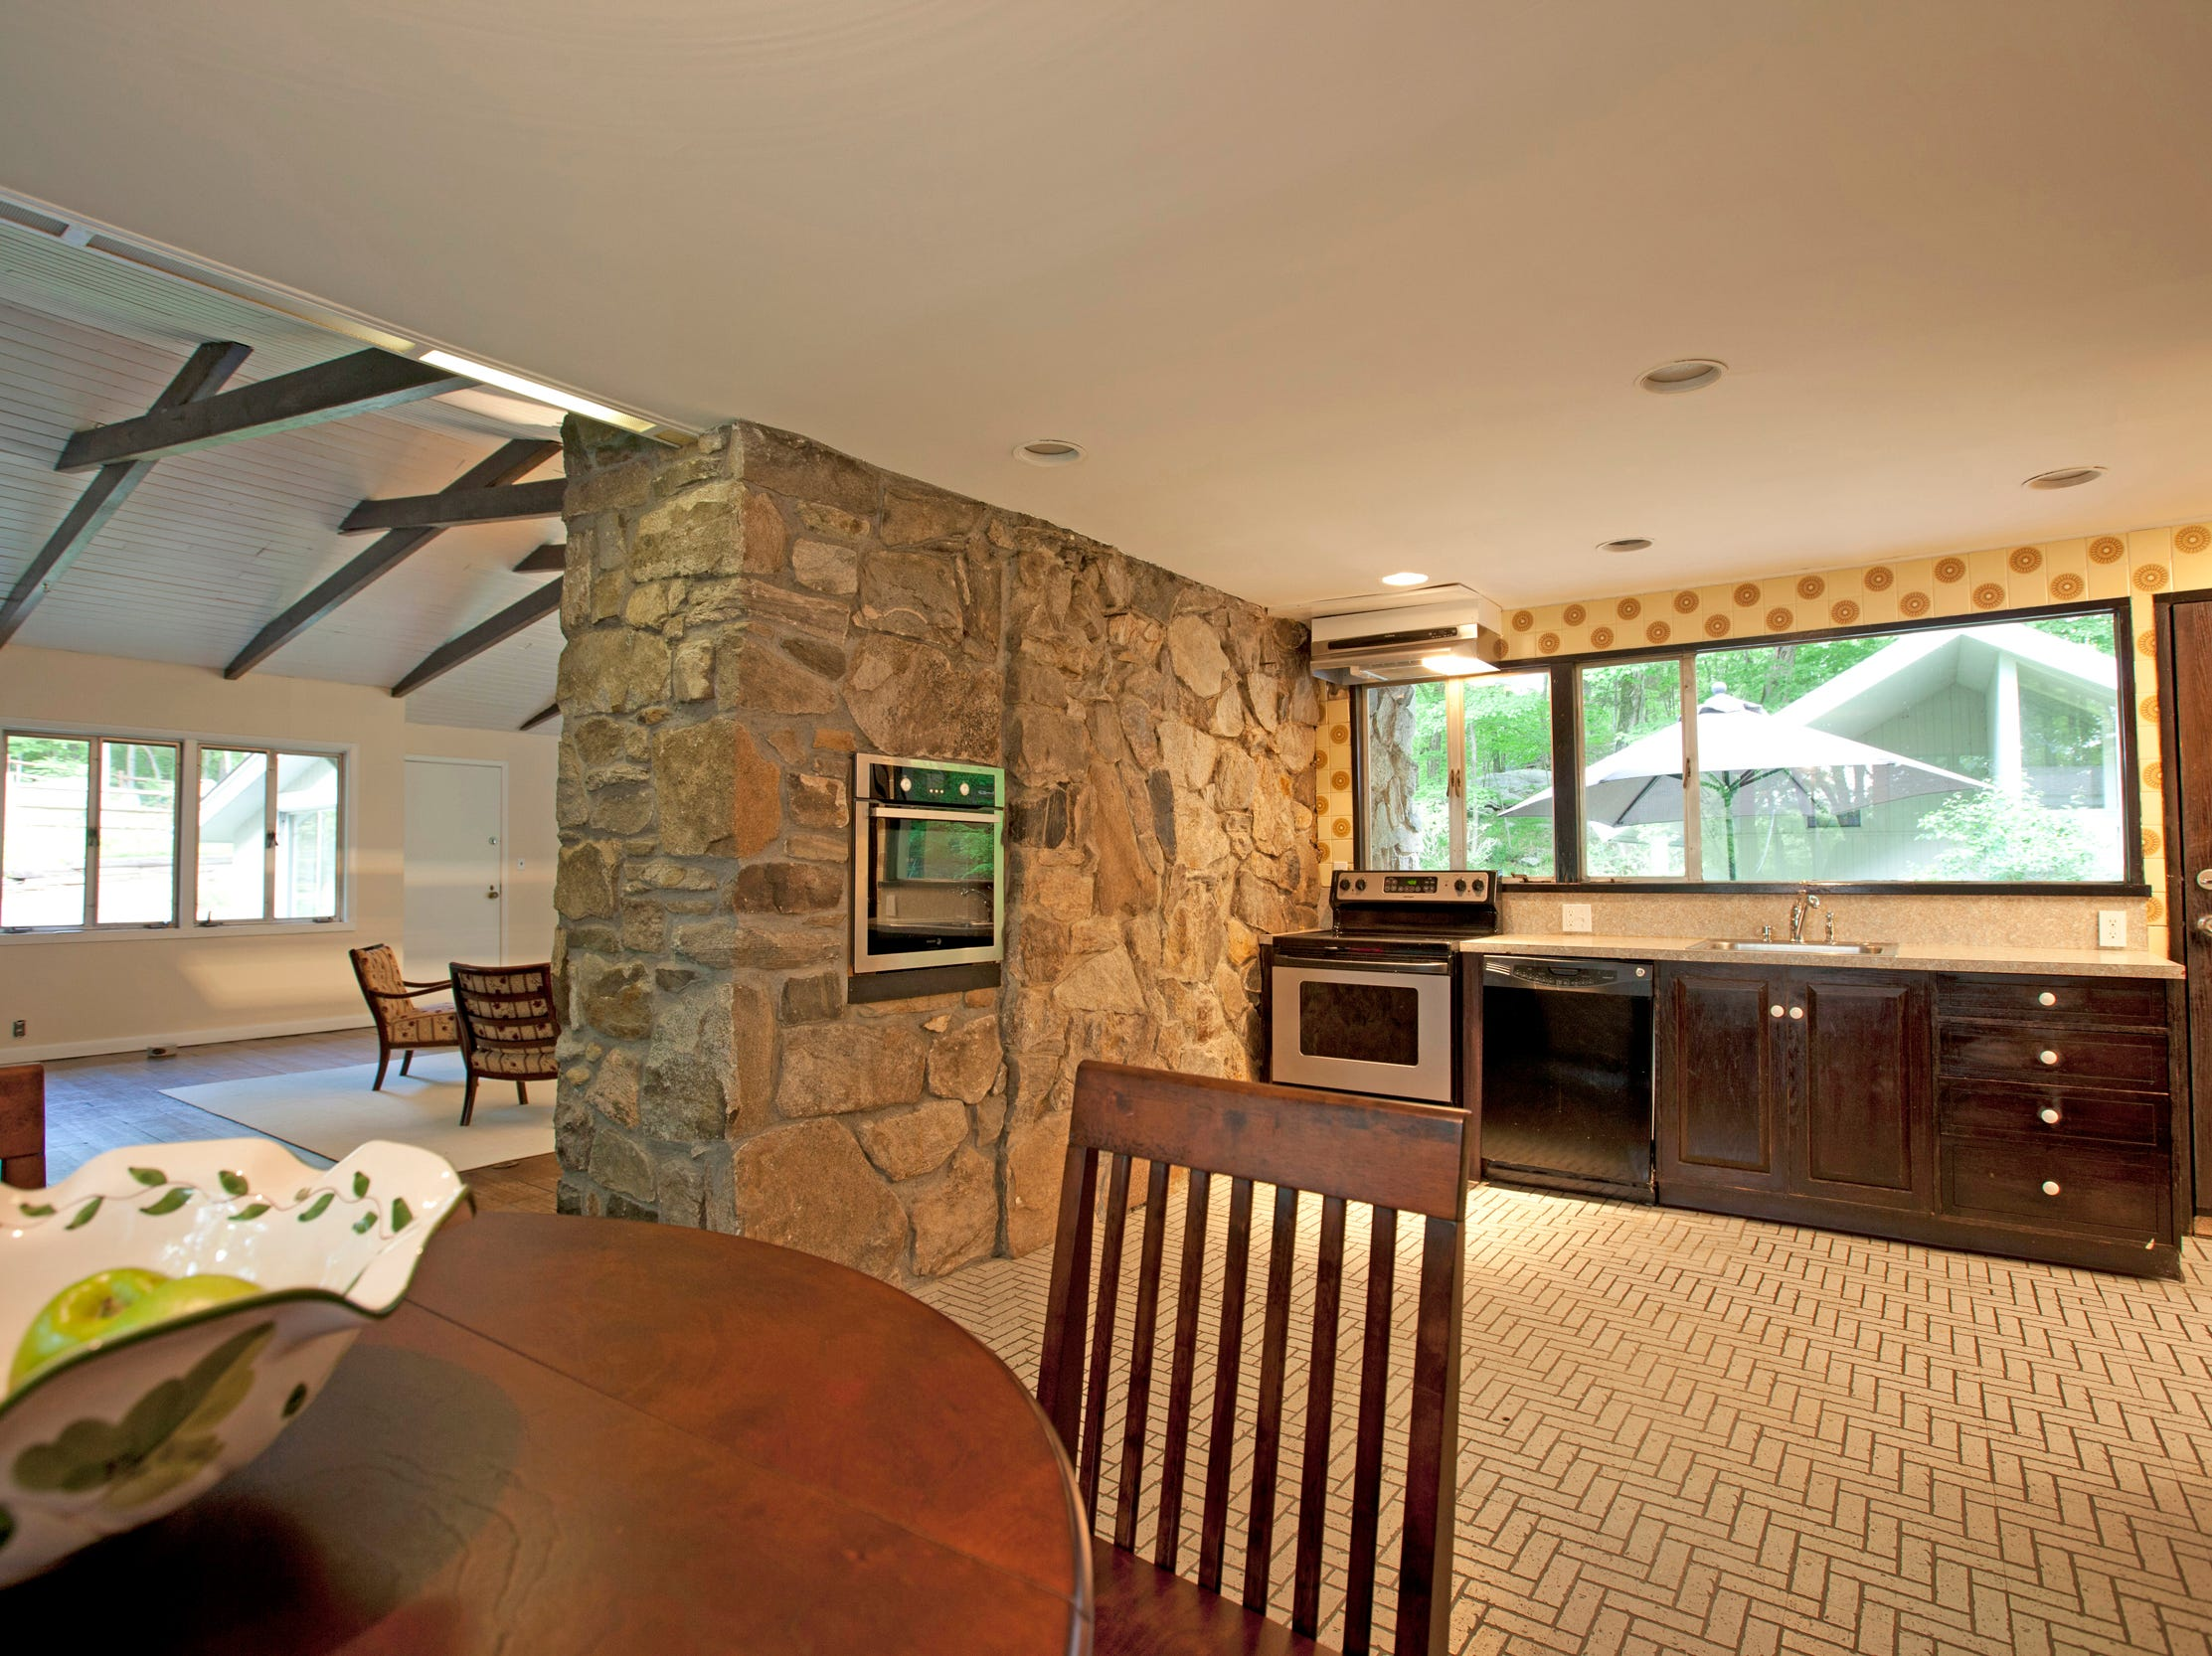 This Midcentury modern home, now on the market in Pound RIdge, was once owned by legendary sportscaster Howard Cosell.